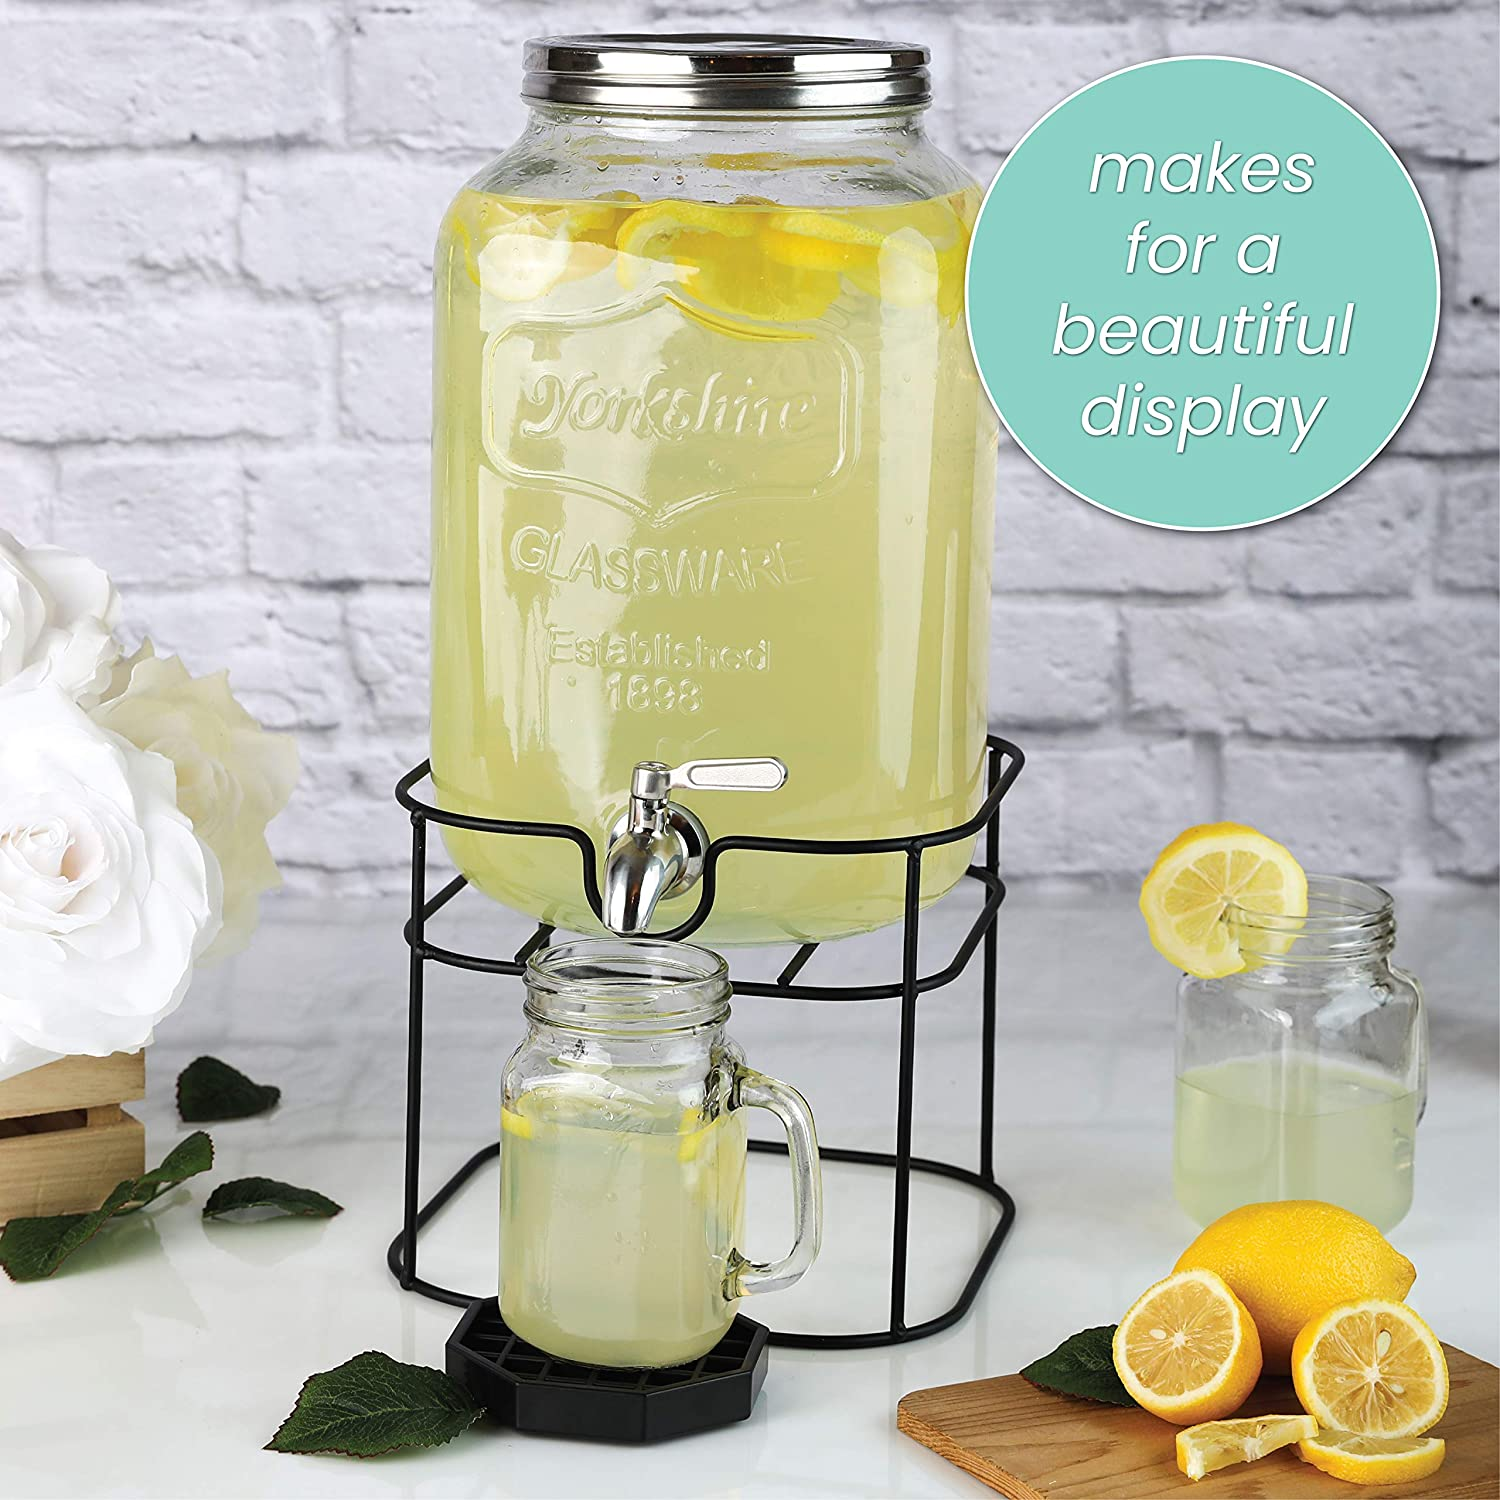 Decorative Mason Jar Dispenser For Sun Tea Iced Tea or Kombucha 2 Gallon Glass Beverage Dispenser with Stainless Steel Spigot on Metal Stand